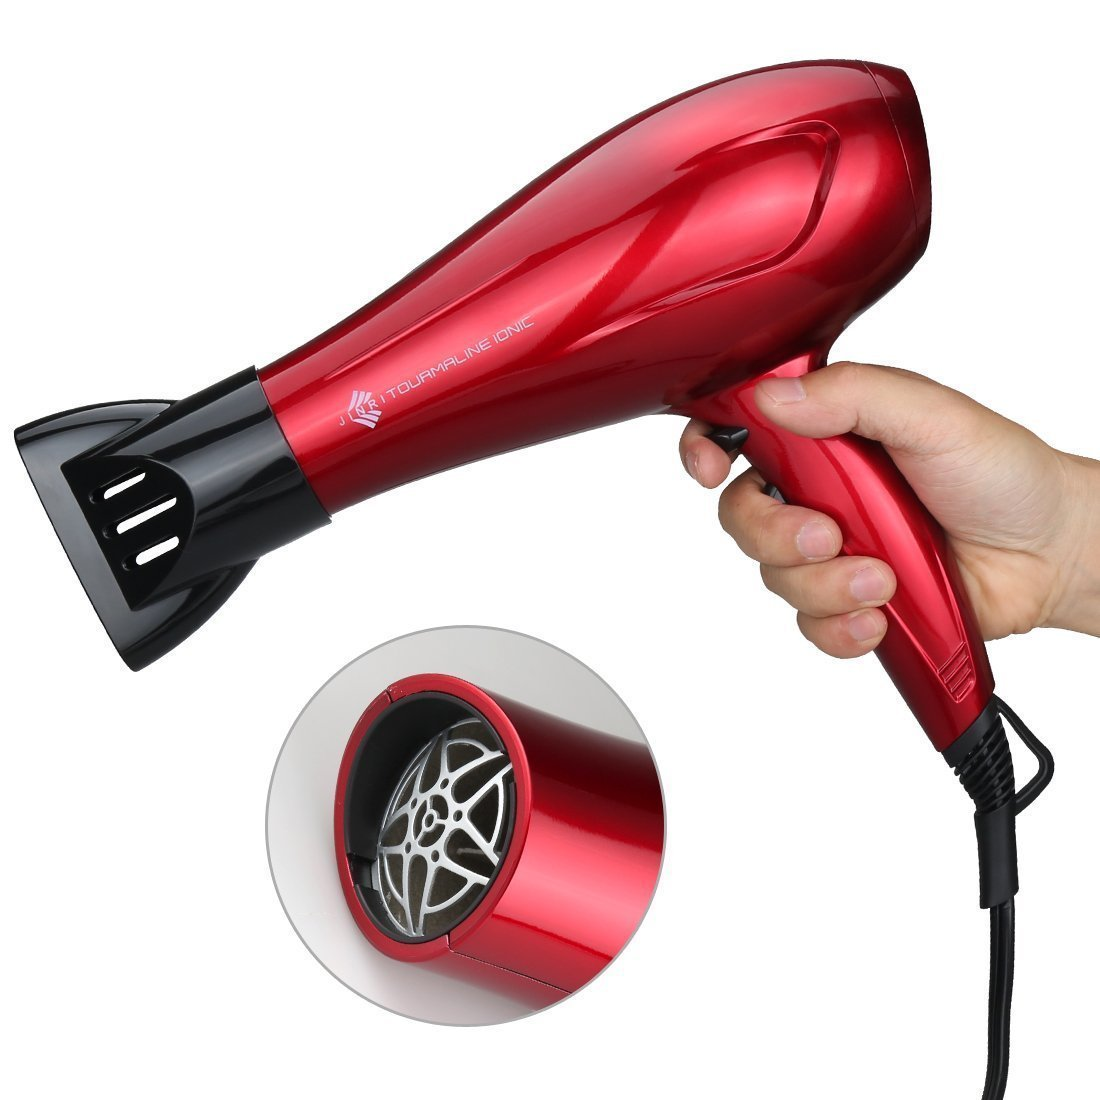 Jinri Beautiful Hair Dryer Powerful Air Tourmaline Strong Air Negative Ionic 1875W DC Motor Blow Dryer Healthy Hair Tool with Nozzle, Fashion Red